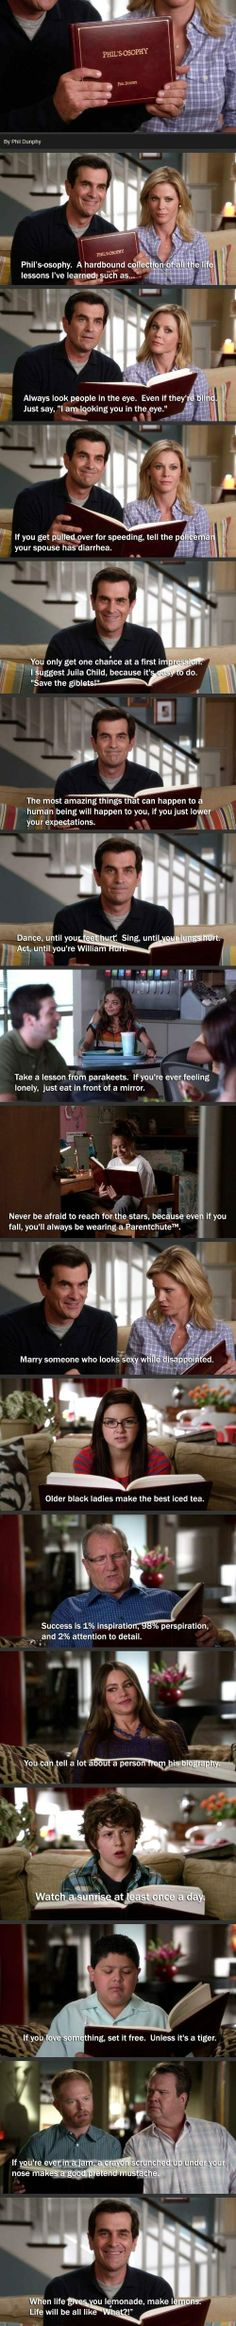 3 life love lessons modern family